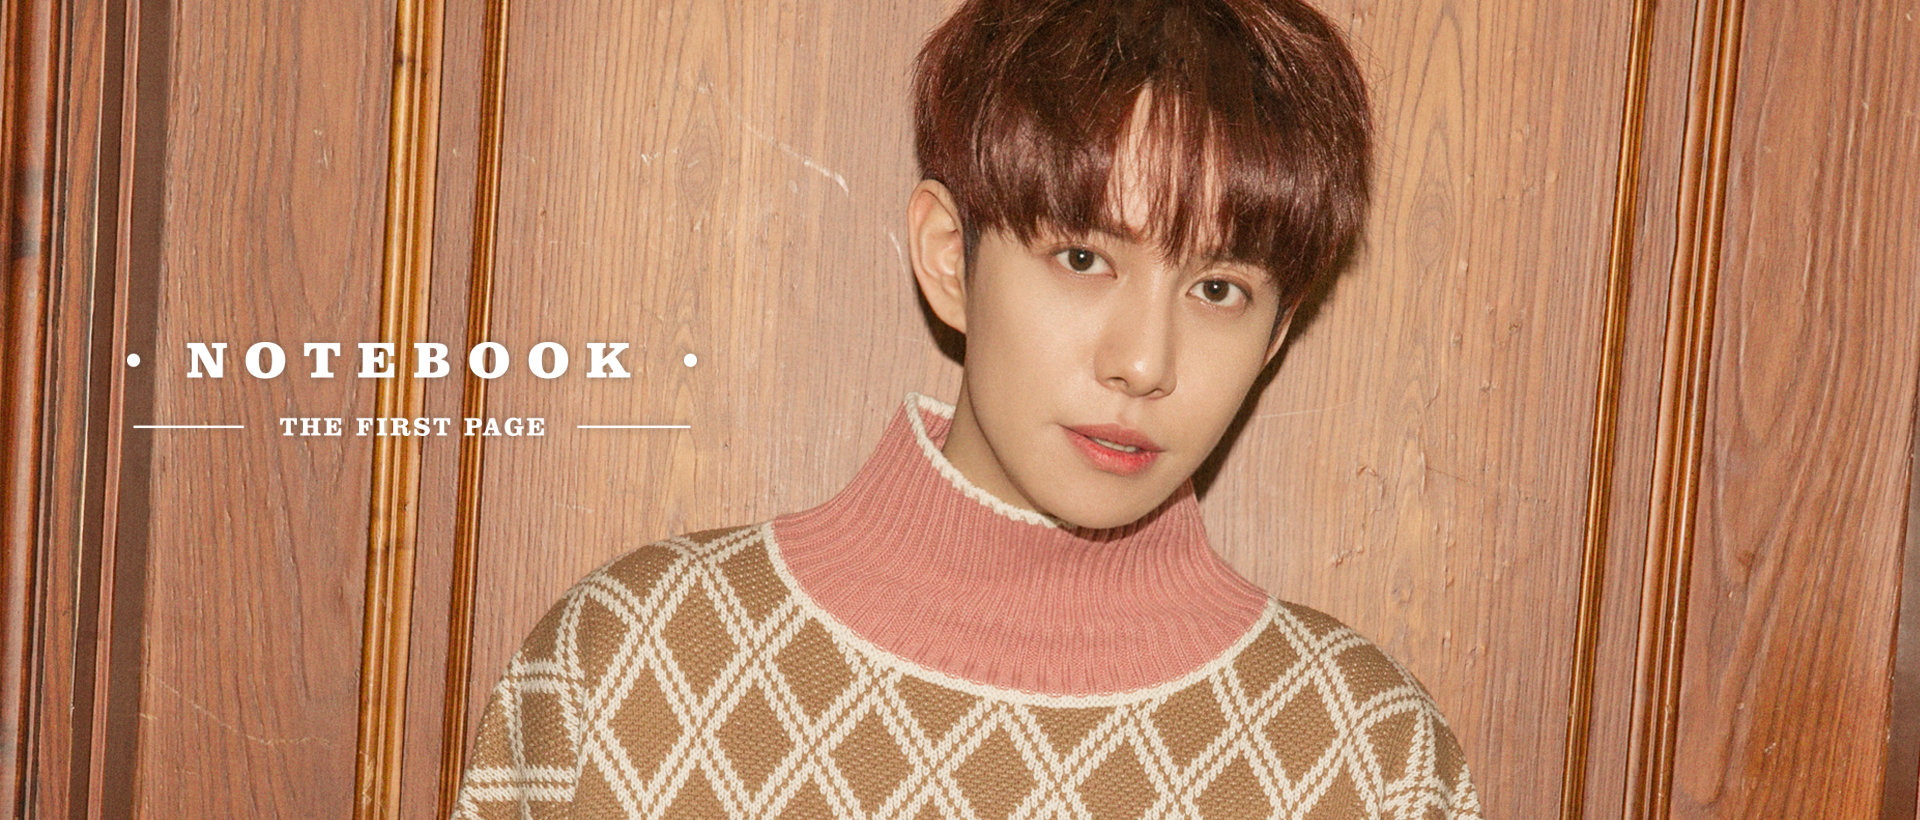 parkKyung_notebook_photo